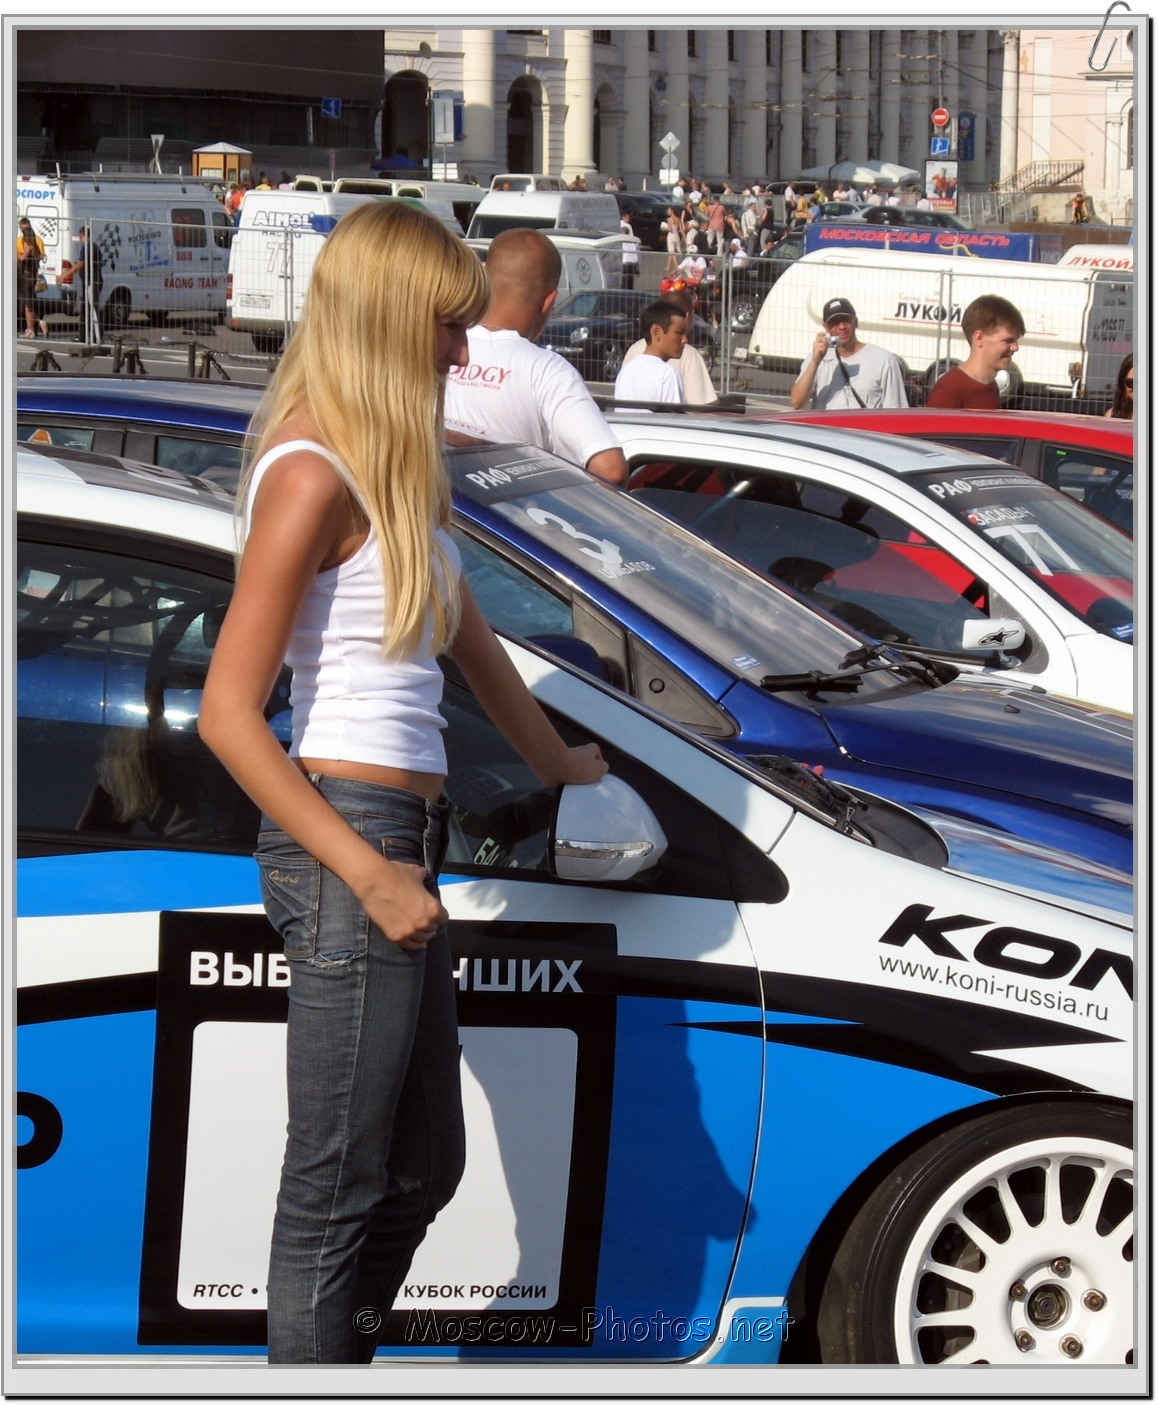 Sexy Moscow Blonde Girl at BavariaCity Racing 2008